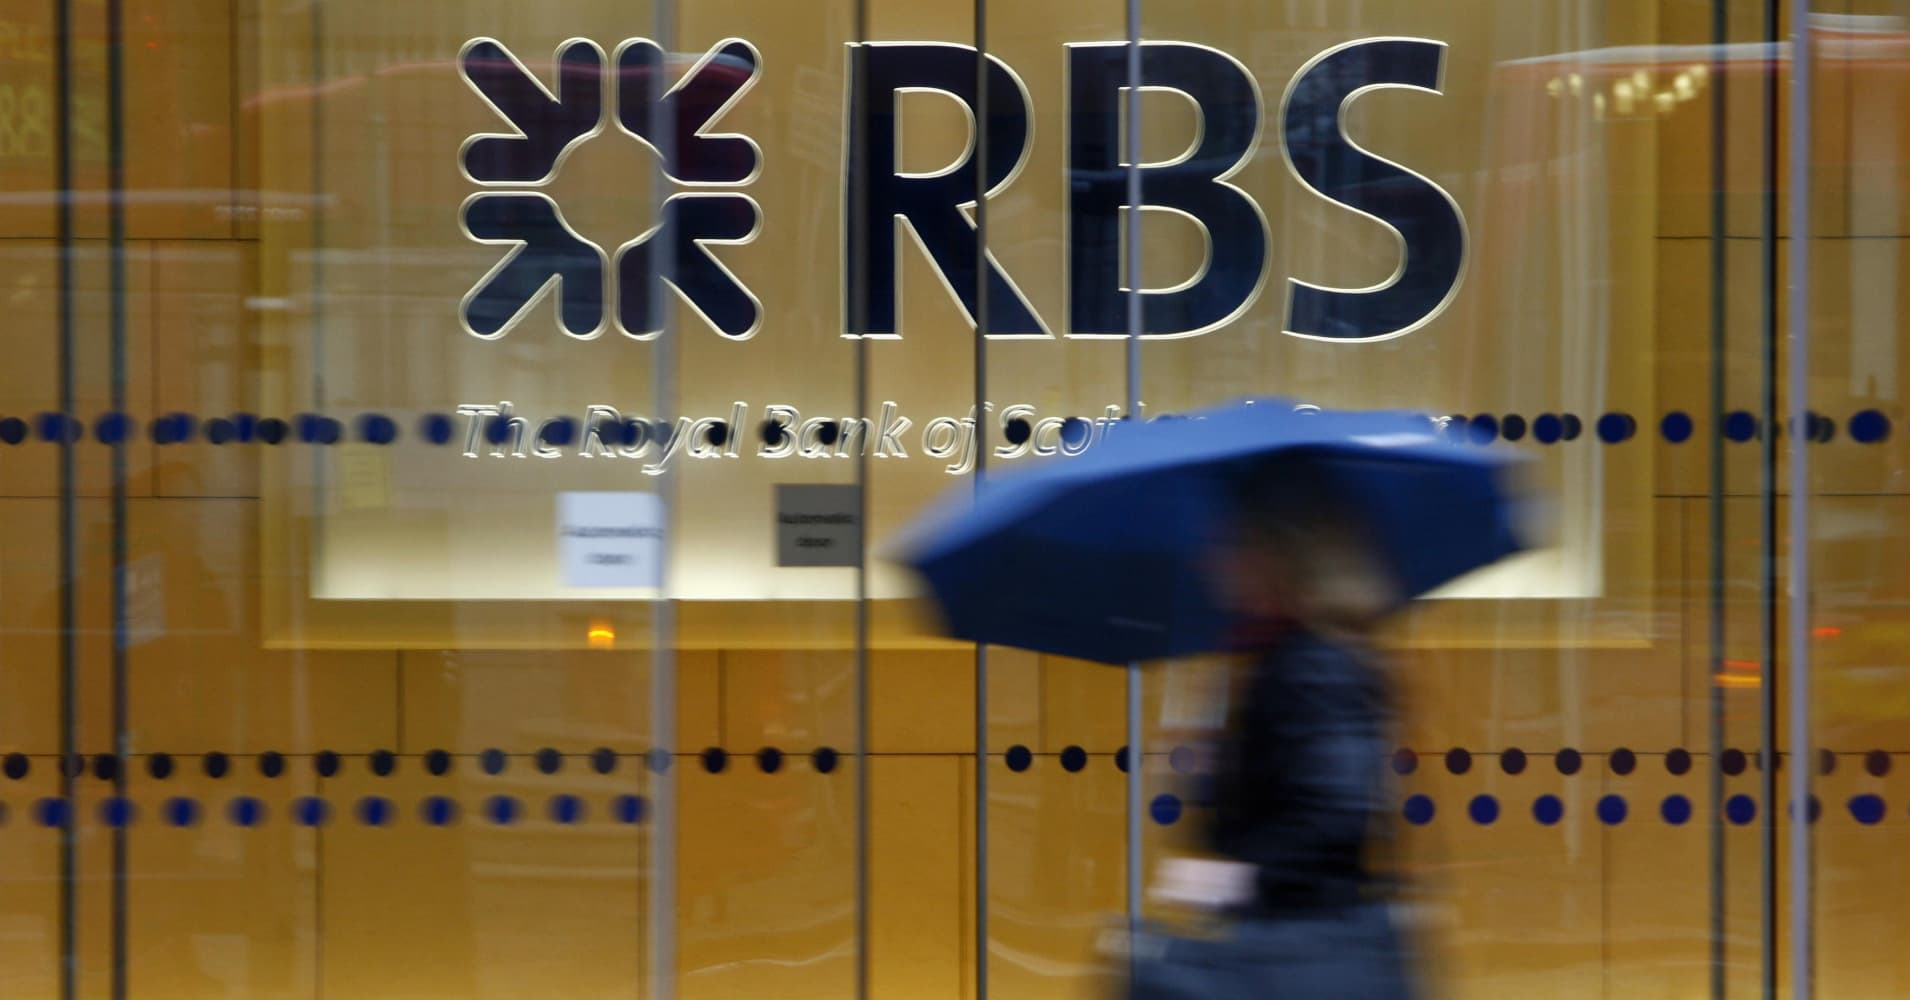 RBS beats full-year profit expectations, warns of 'heightened' Brexit uncertainty